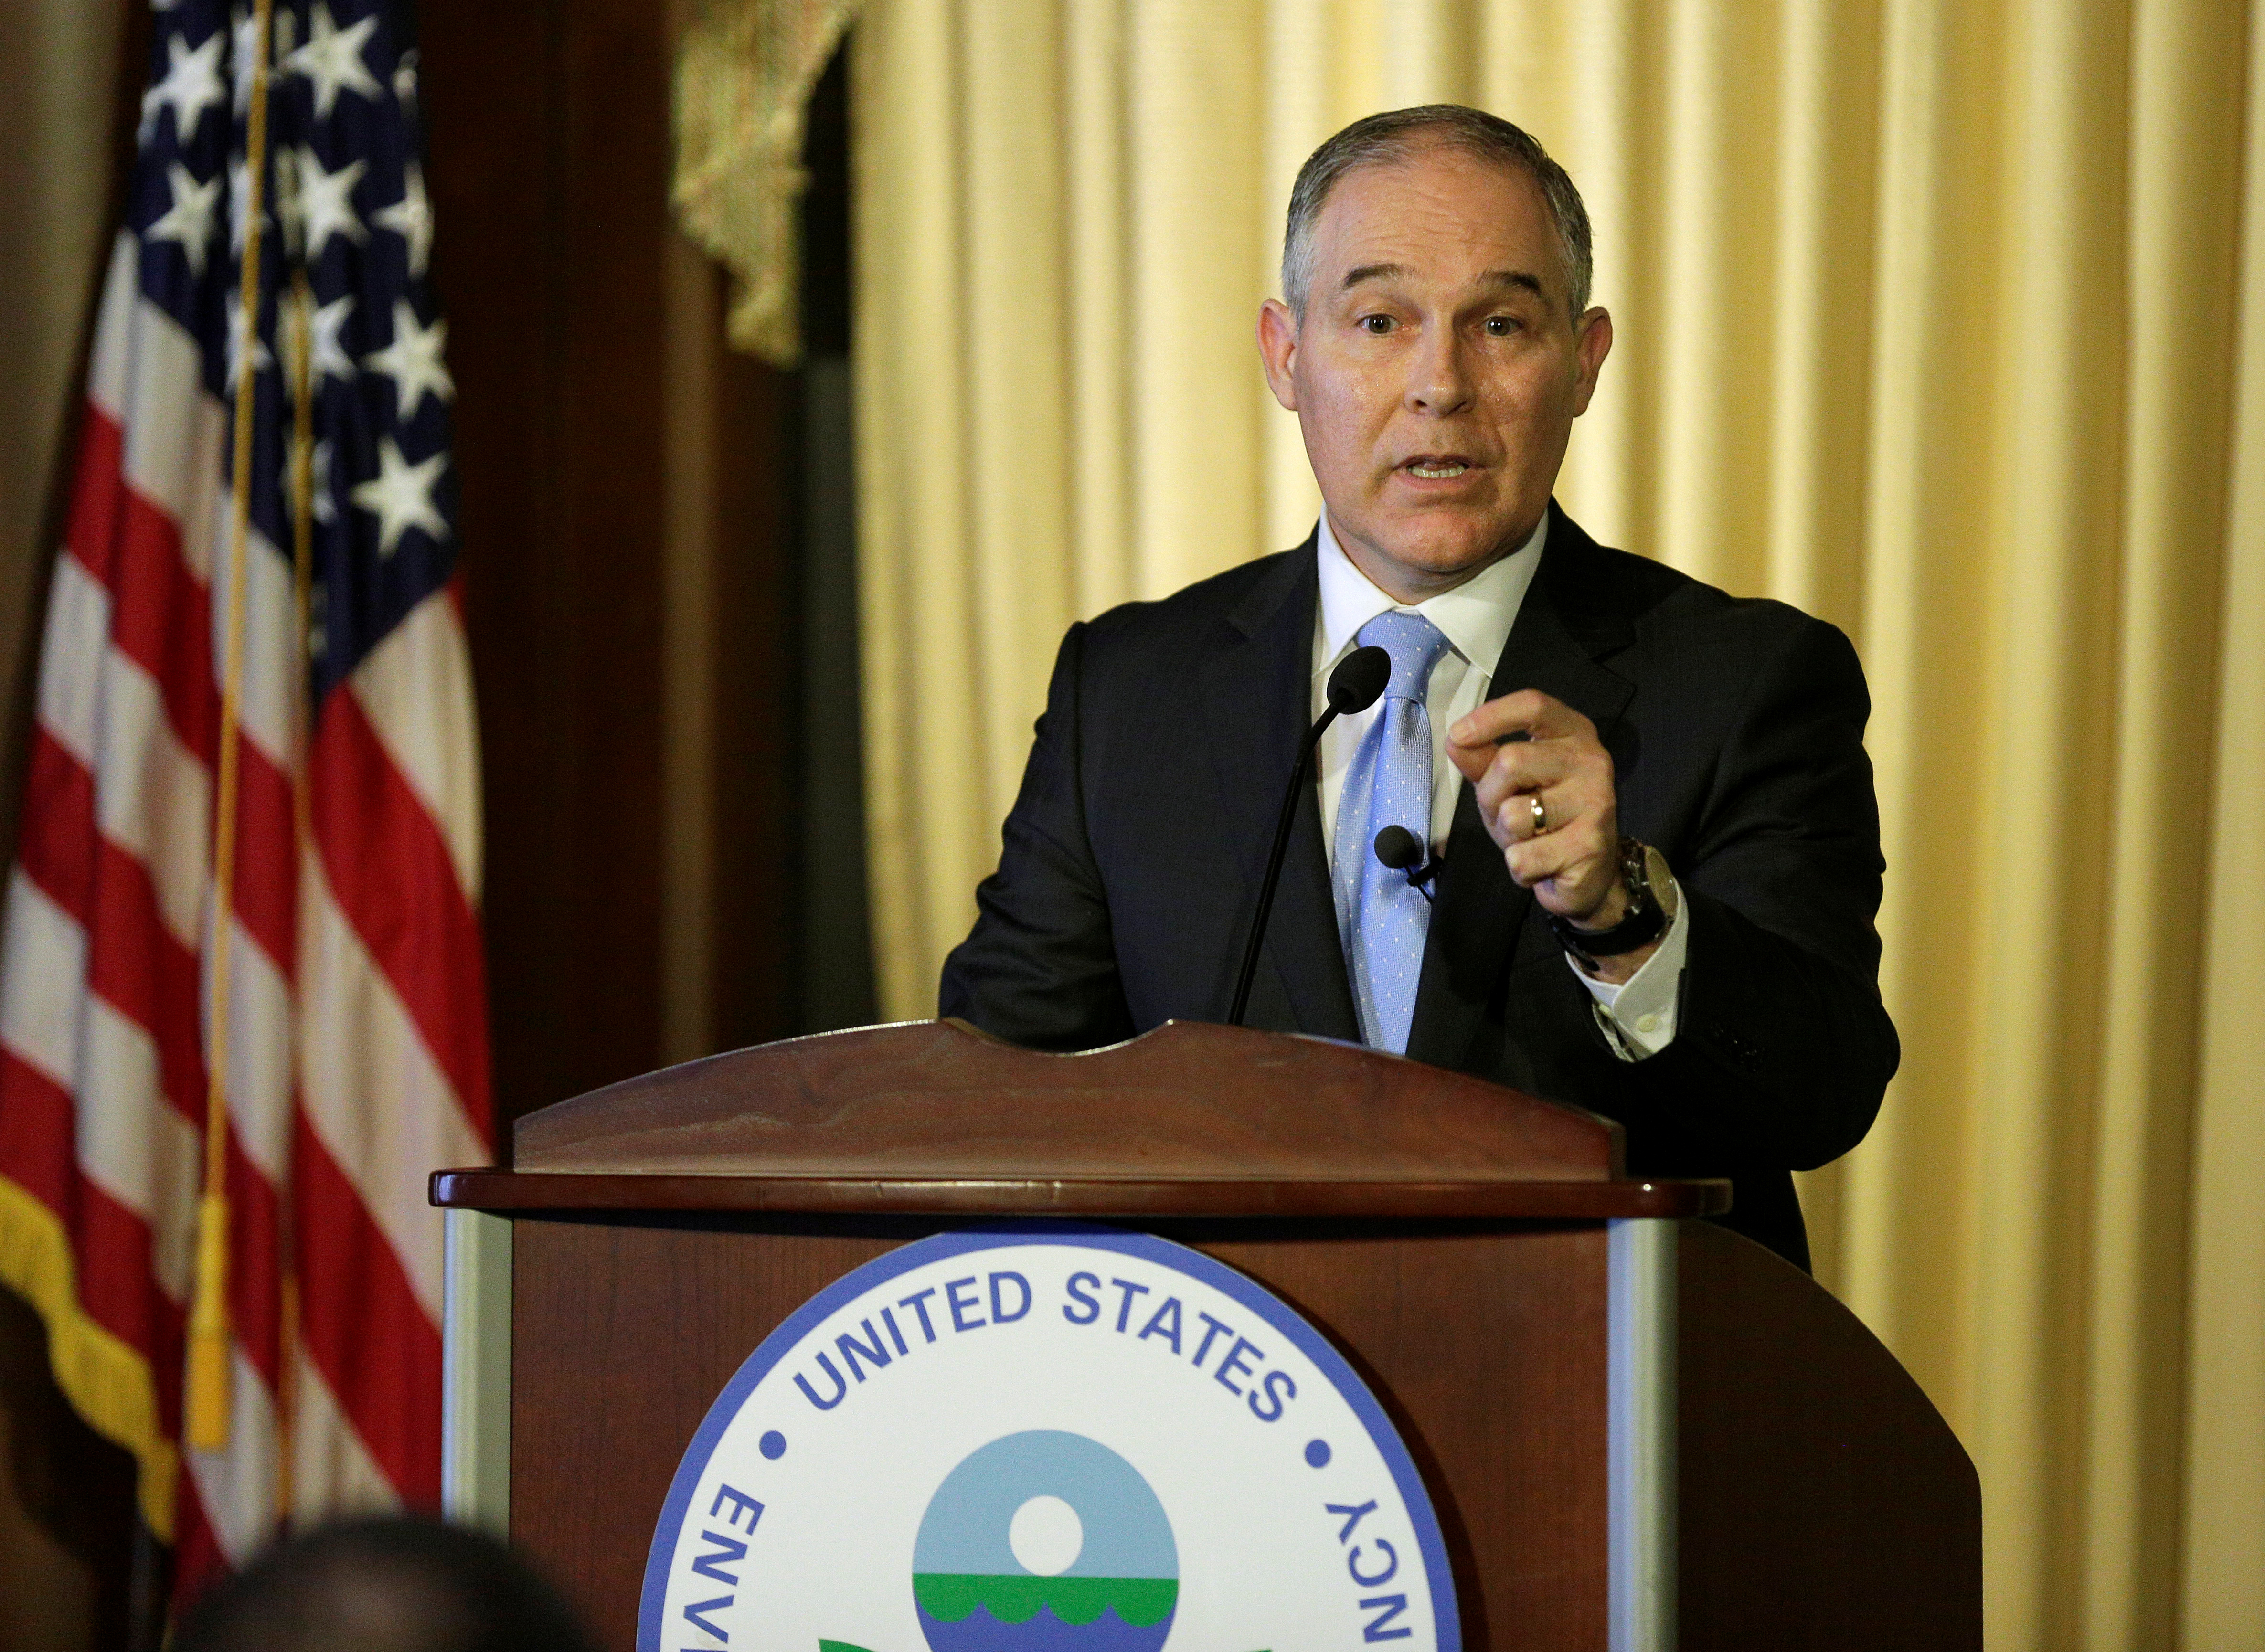 Scott Pruitt, administrator of the Environmental Protection Agency (EPA), speaks to employees of the Agency in Washington